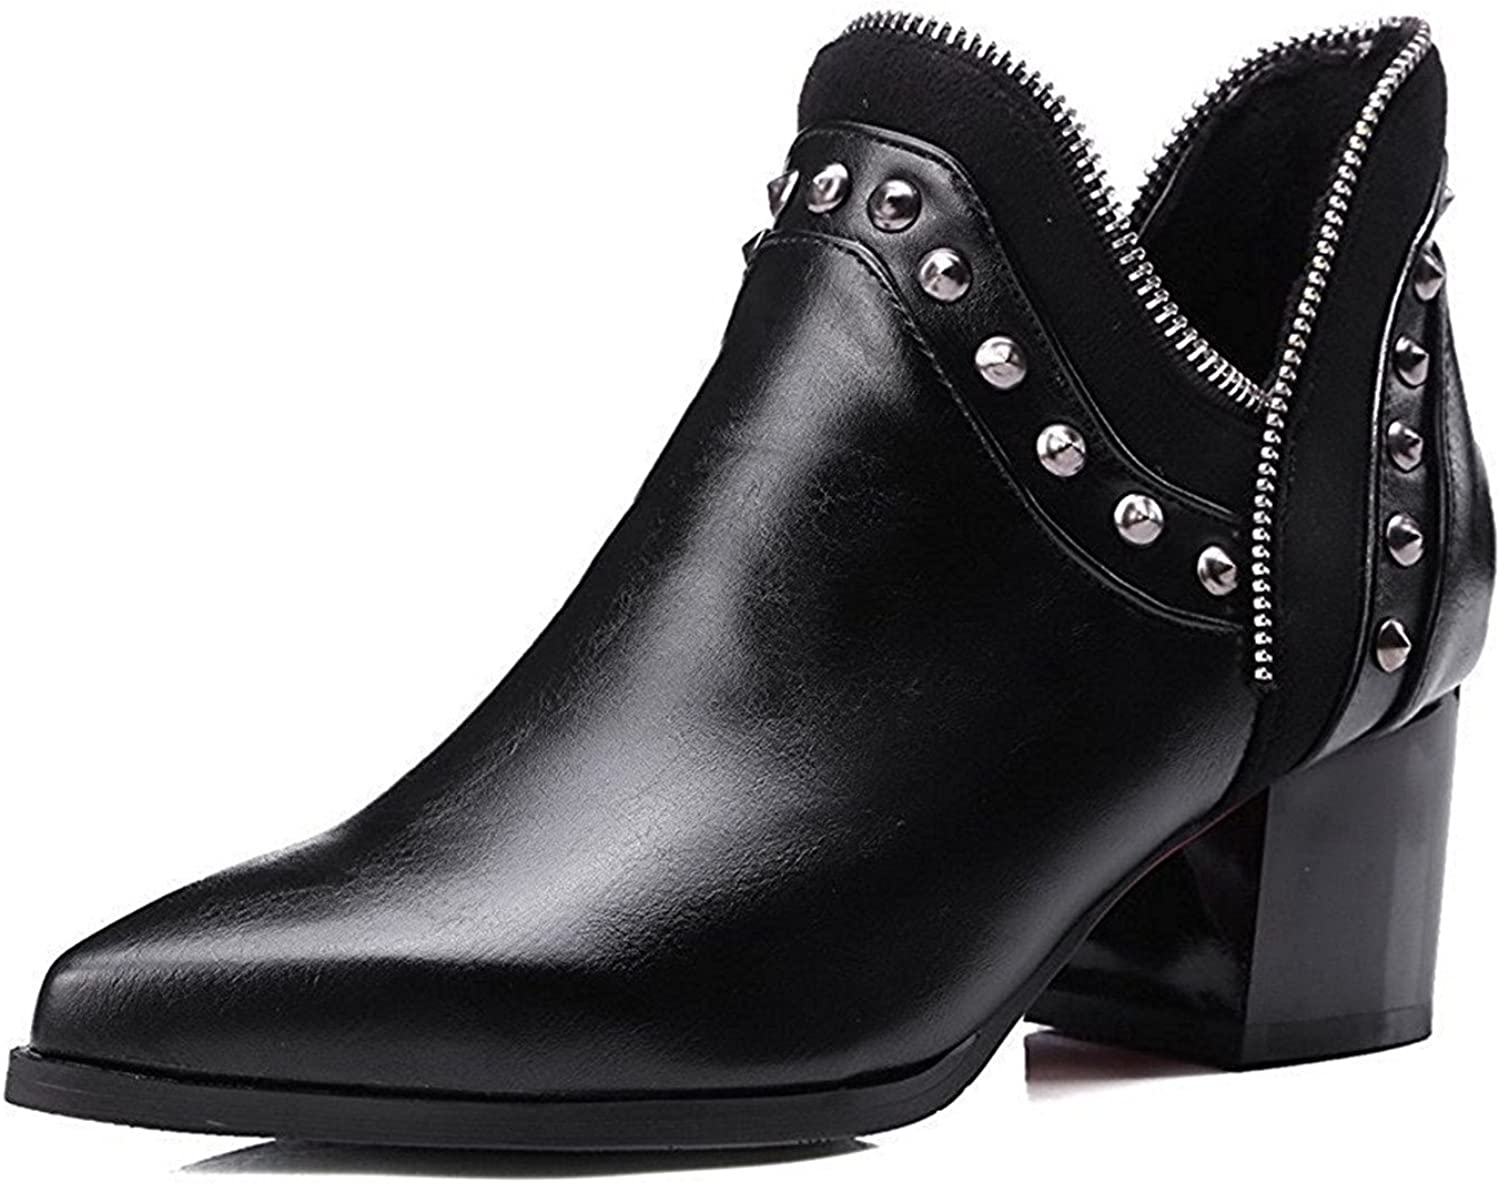 WANabcMAN Comfortable Women's Pointed Closed Toe Kitten Heels Ankle High Solid Boots Popular